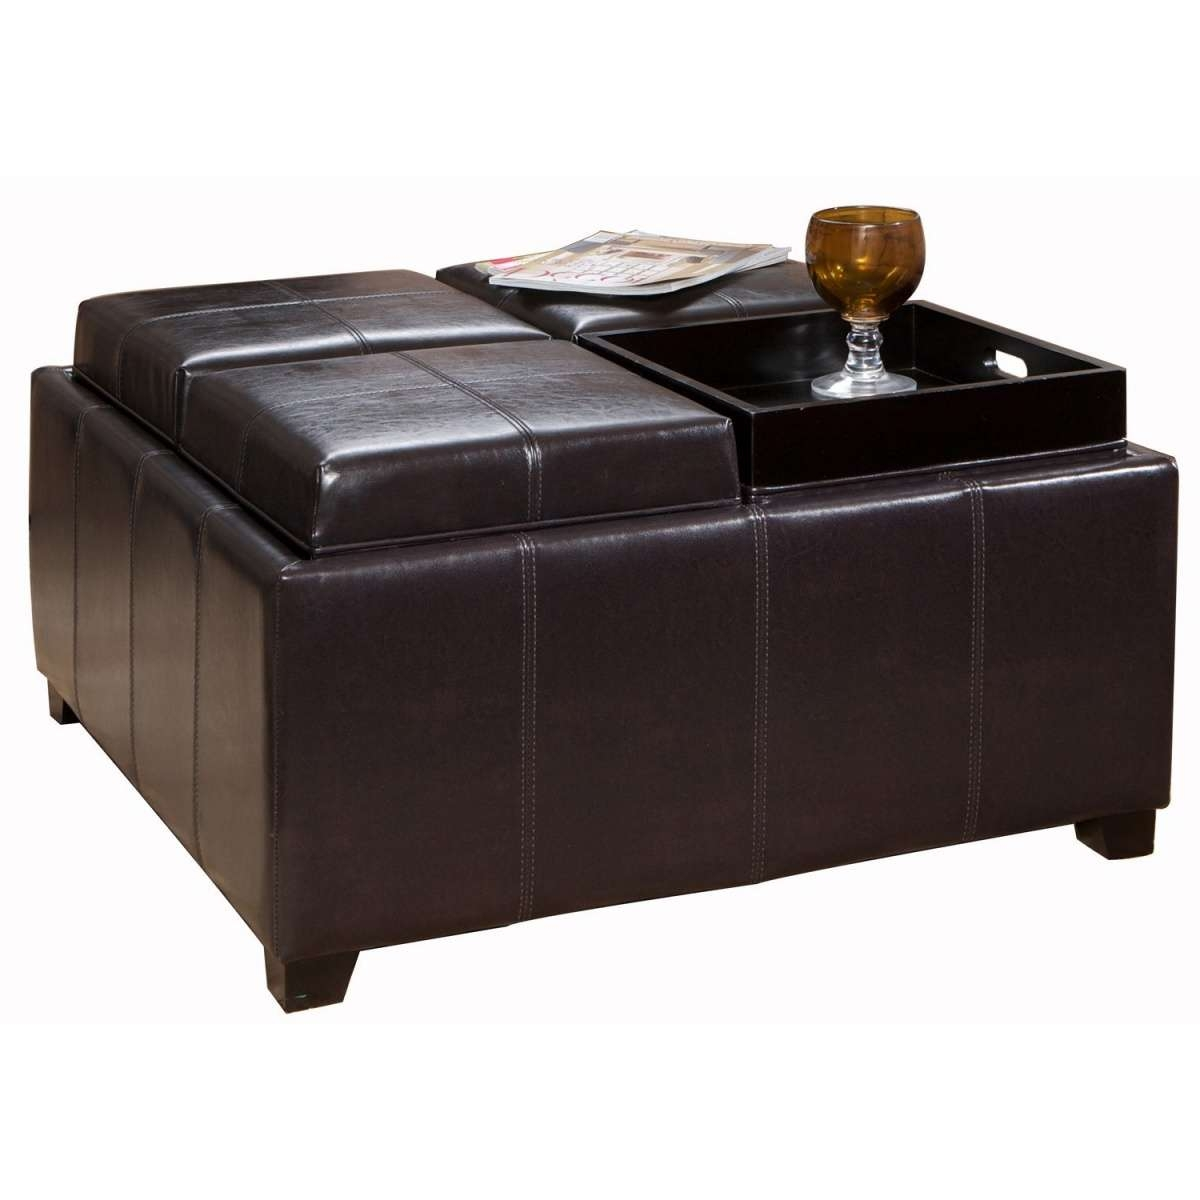 Coffee Tables Ideas: Storage Brown Leather Ottoman Coffee Table With Regard To Famous Brown Leather Ottoman Coffee Tables (View 3 of 20)